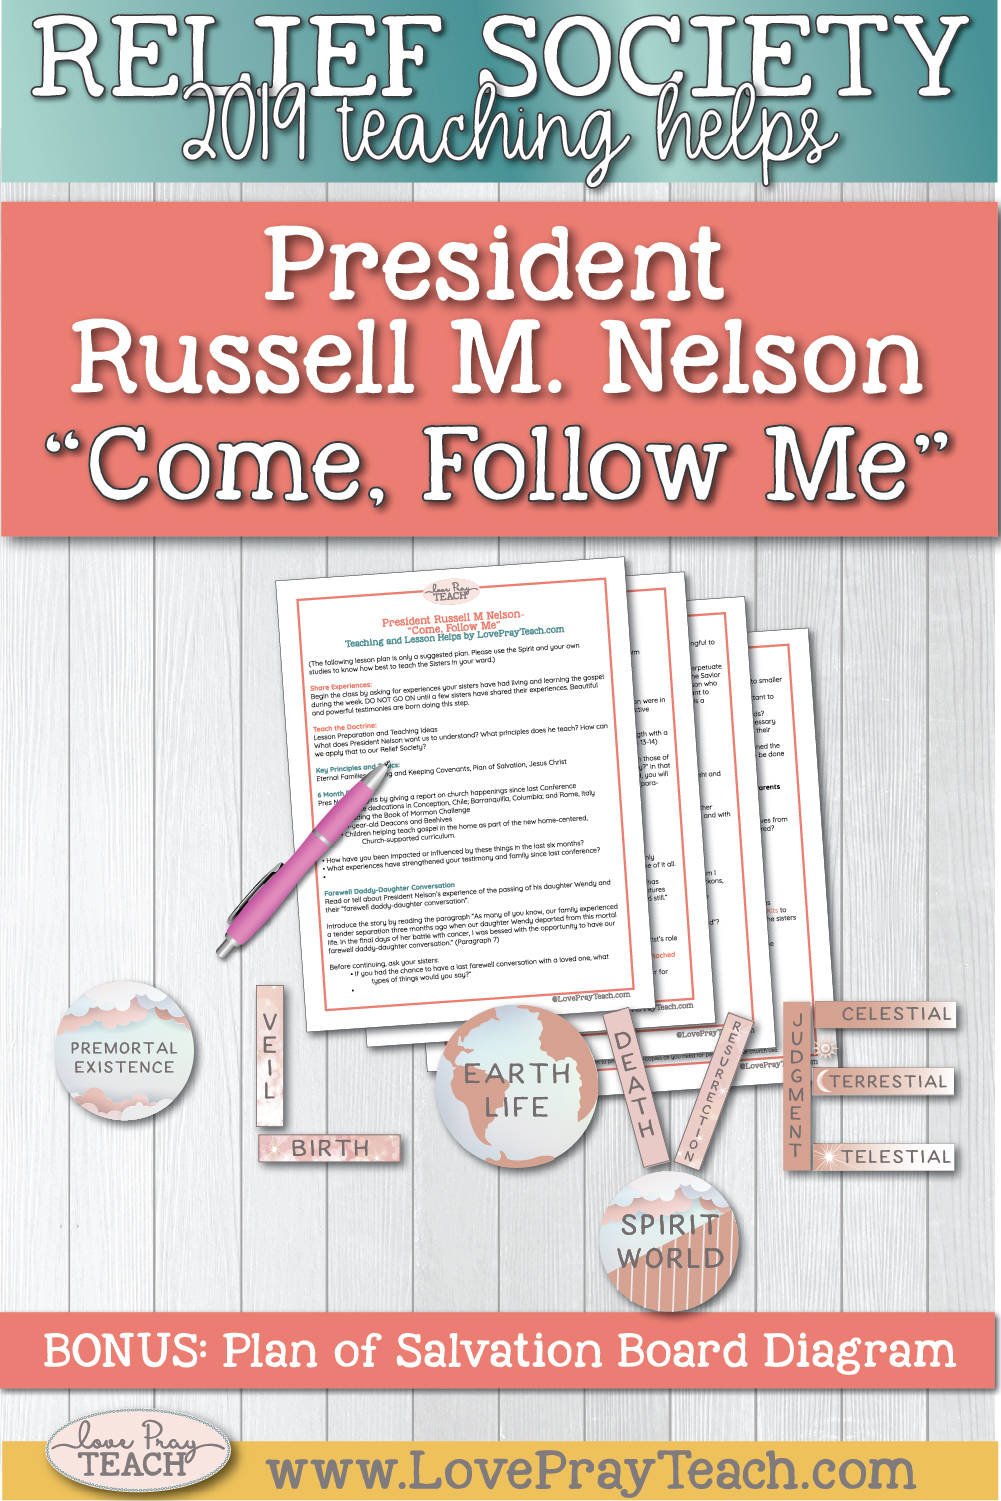 """Relief Society General Conference Lesson Helps: """"Come, Follow Me"""" by President Russell M. Nelson includes lesson suggested ideas plus a bonus Plan of Salvation L-O-V-E board diagram!  www.LovePrayTeach.com"""